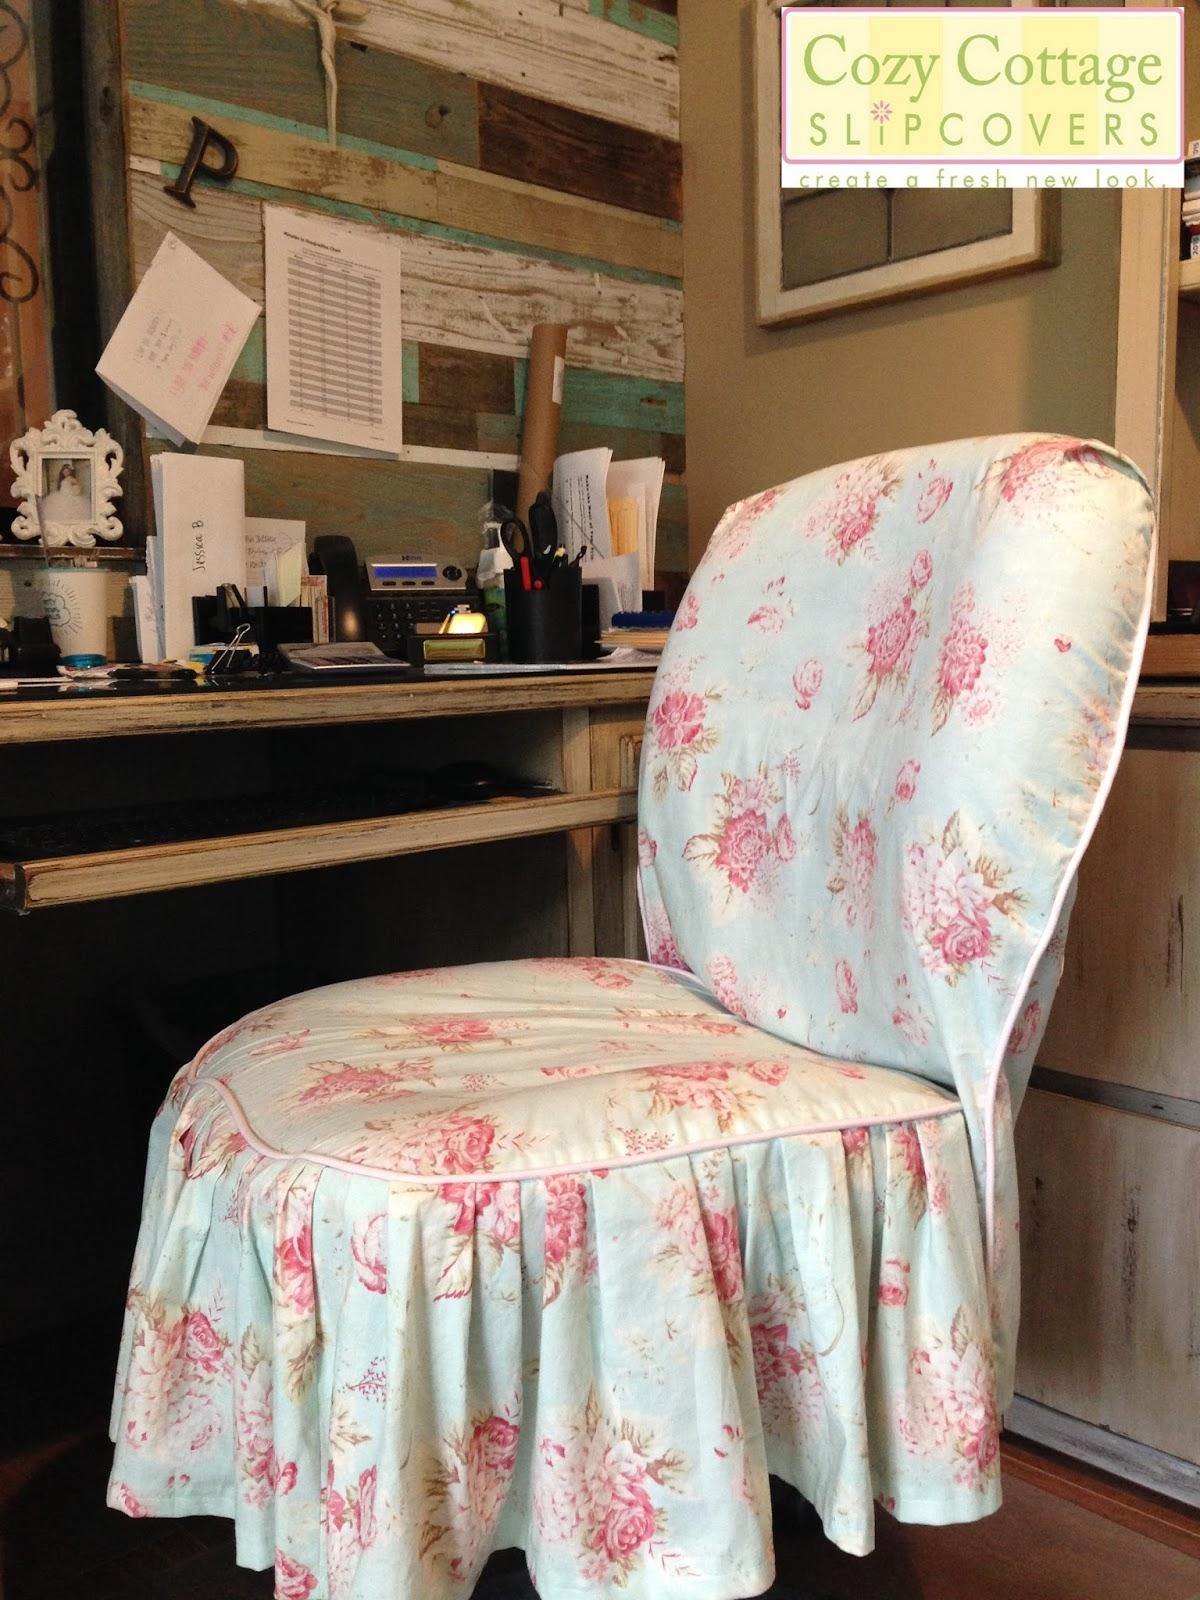 Cozy Cottage Slipcovers: Shabby Chic Texas Style In The Office Throughout Shabby Slipcovers (Image 3 of 20)